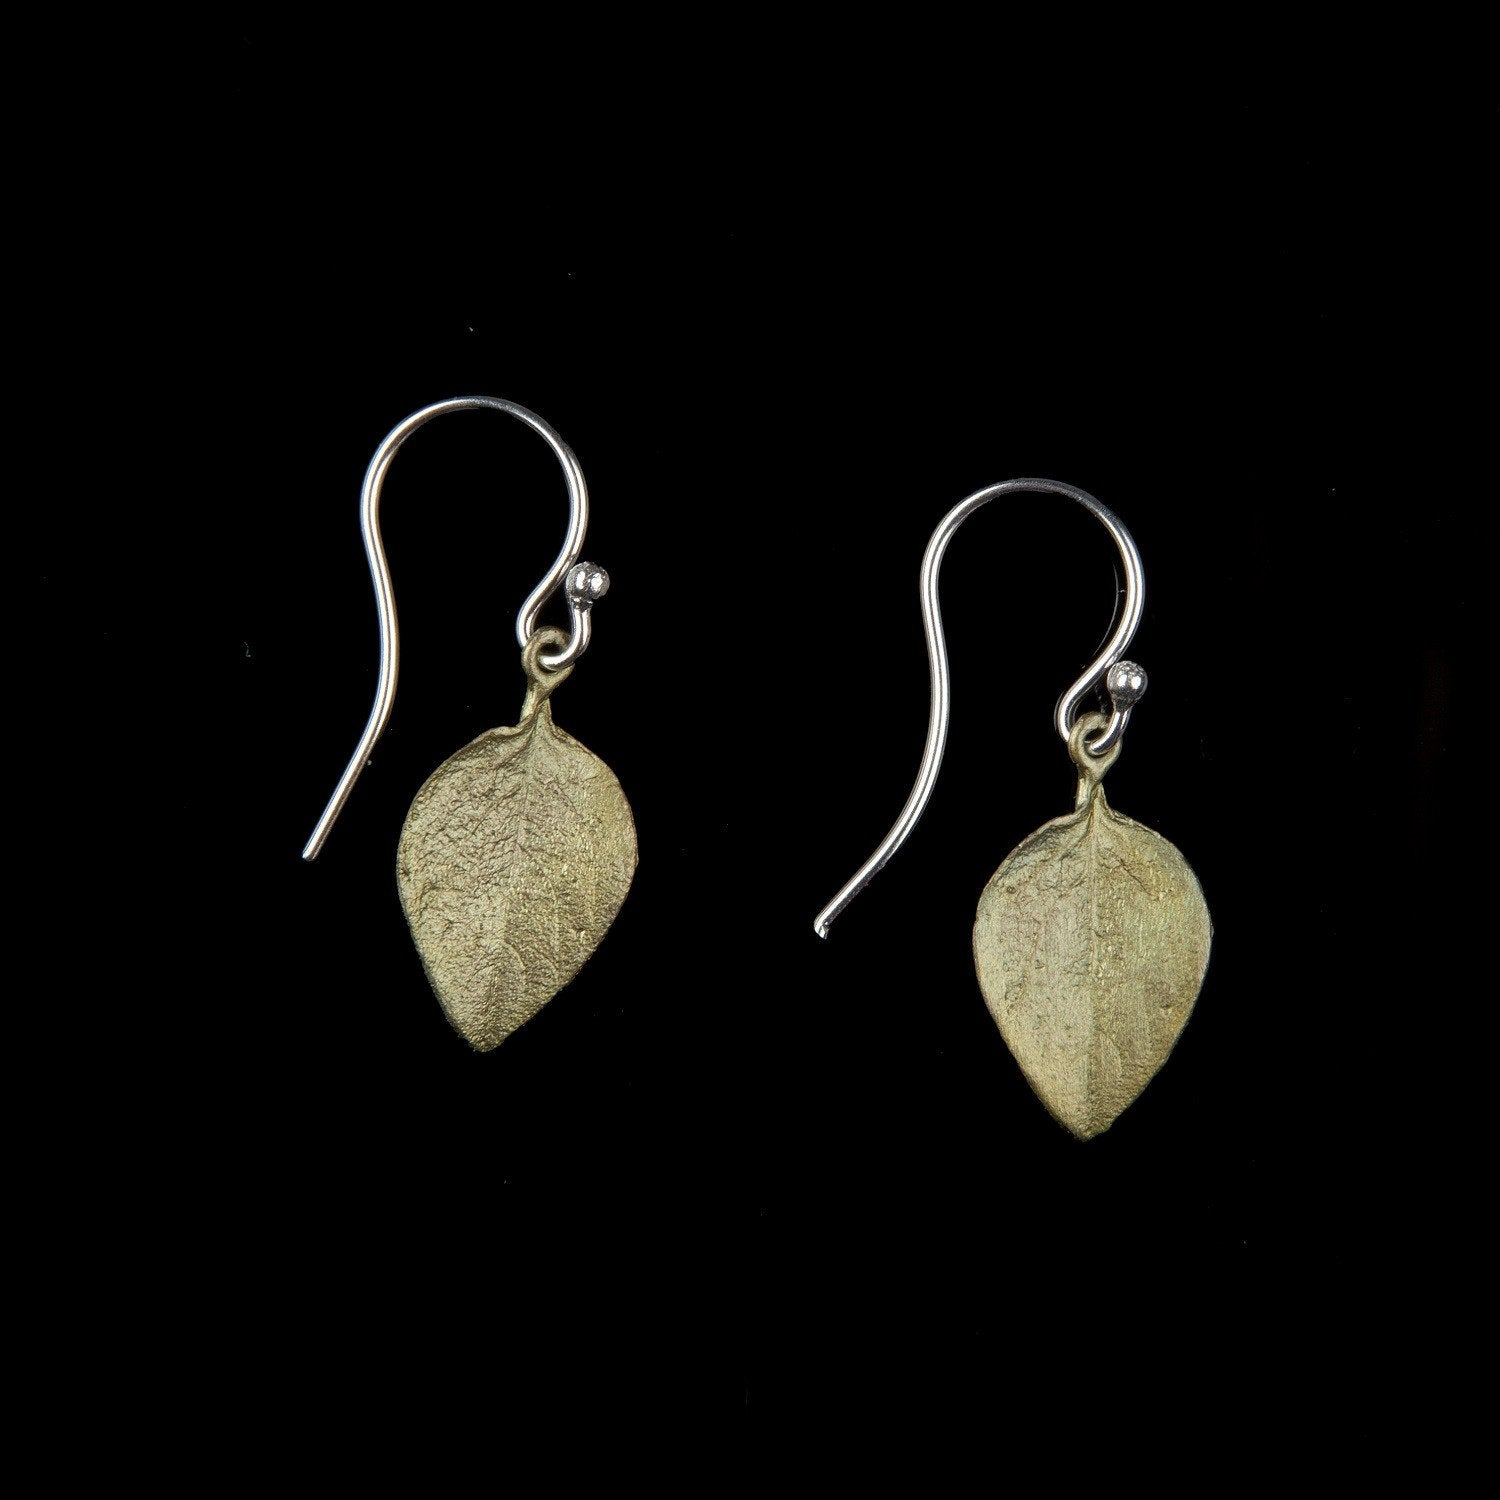 Sweet Basil Earrings - Small Leaf